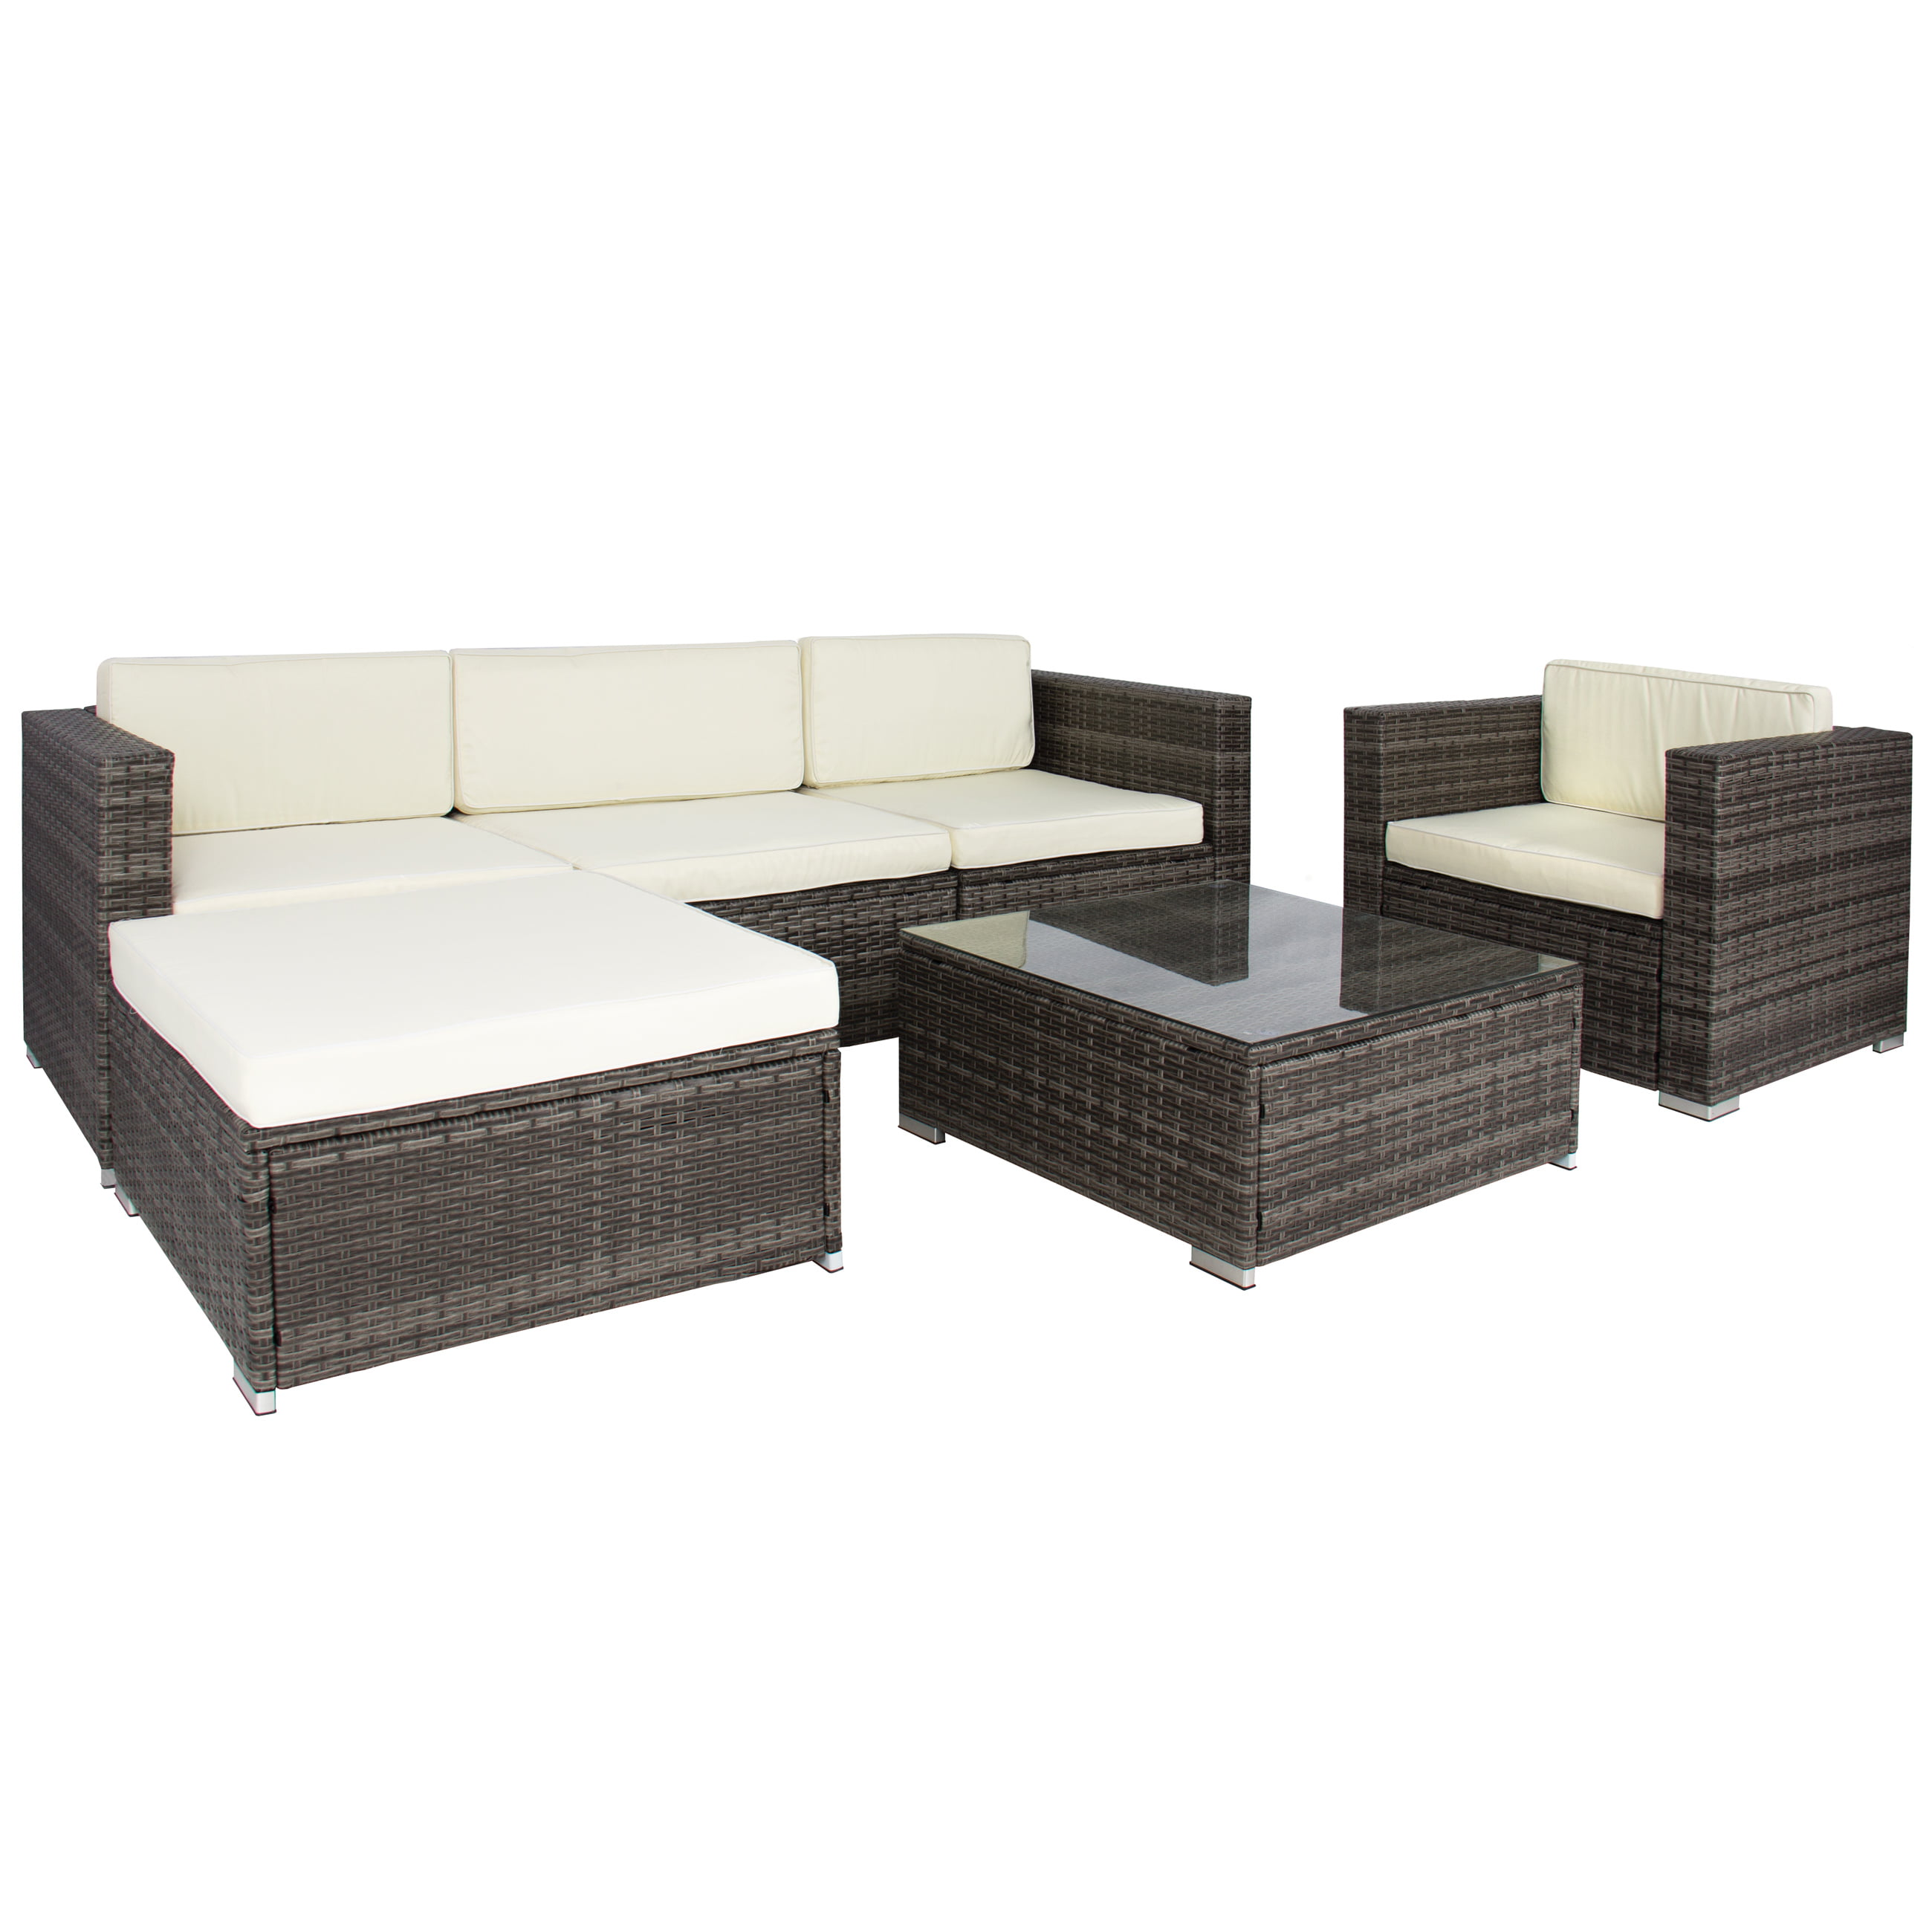 rattan sofa sets 6pc outdoor patio garden wicker furniture rattan sofa set thesofa. Black Bedroom Furniture Sets. Home Design Ideas